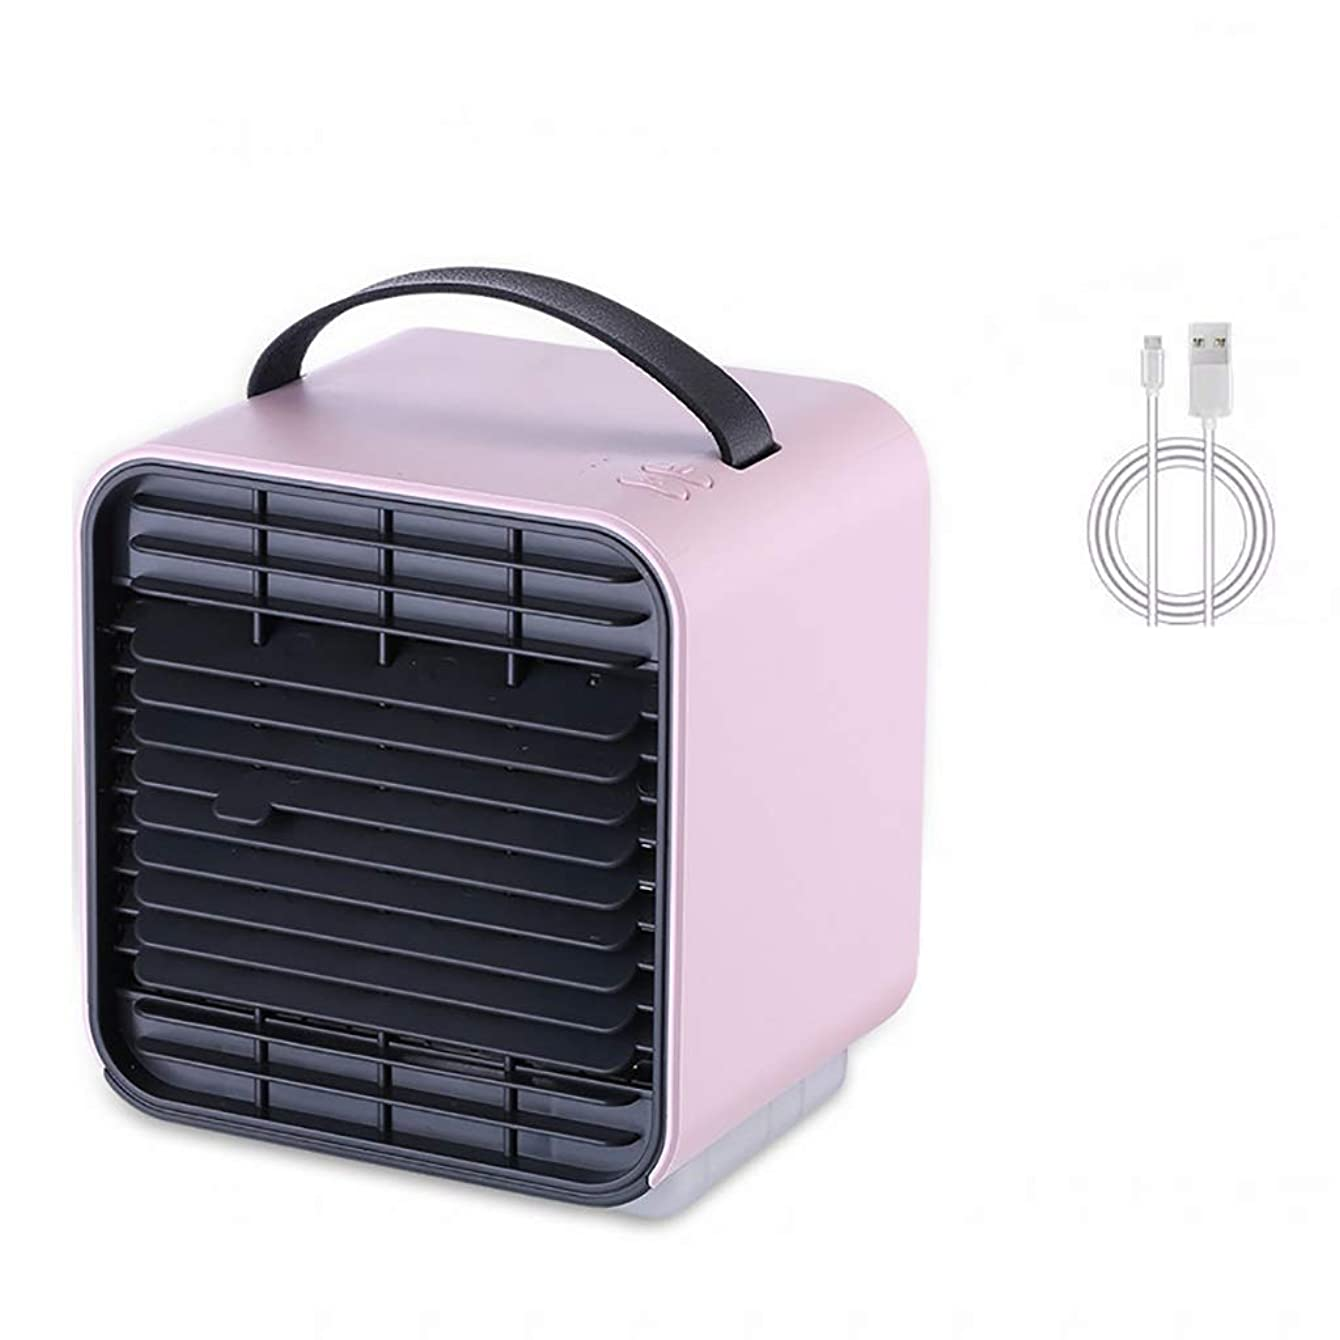 Air Cooler Portable Air Conditioner Cooler Fan with 3 Fan Speeds, Personal Space with Handle, Mini Humidifier, Purifier 3 in 1 Evaporative Cooler with USB Rechargeable, Cooling Desktop Fan with Light